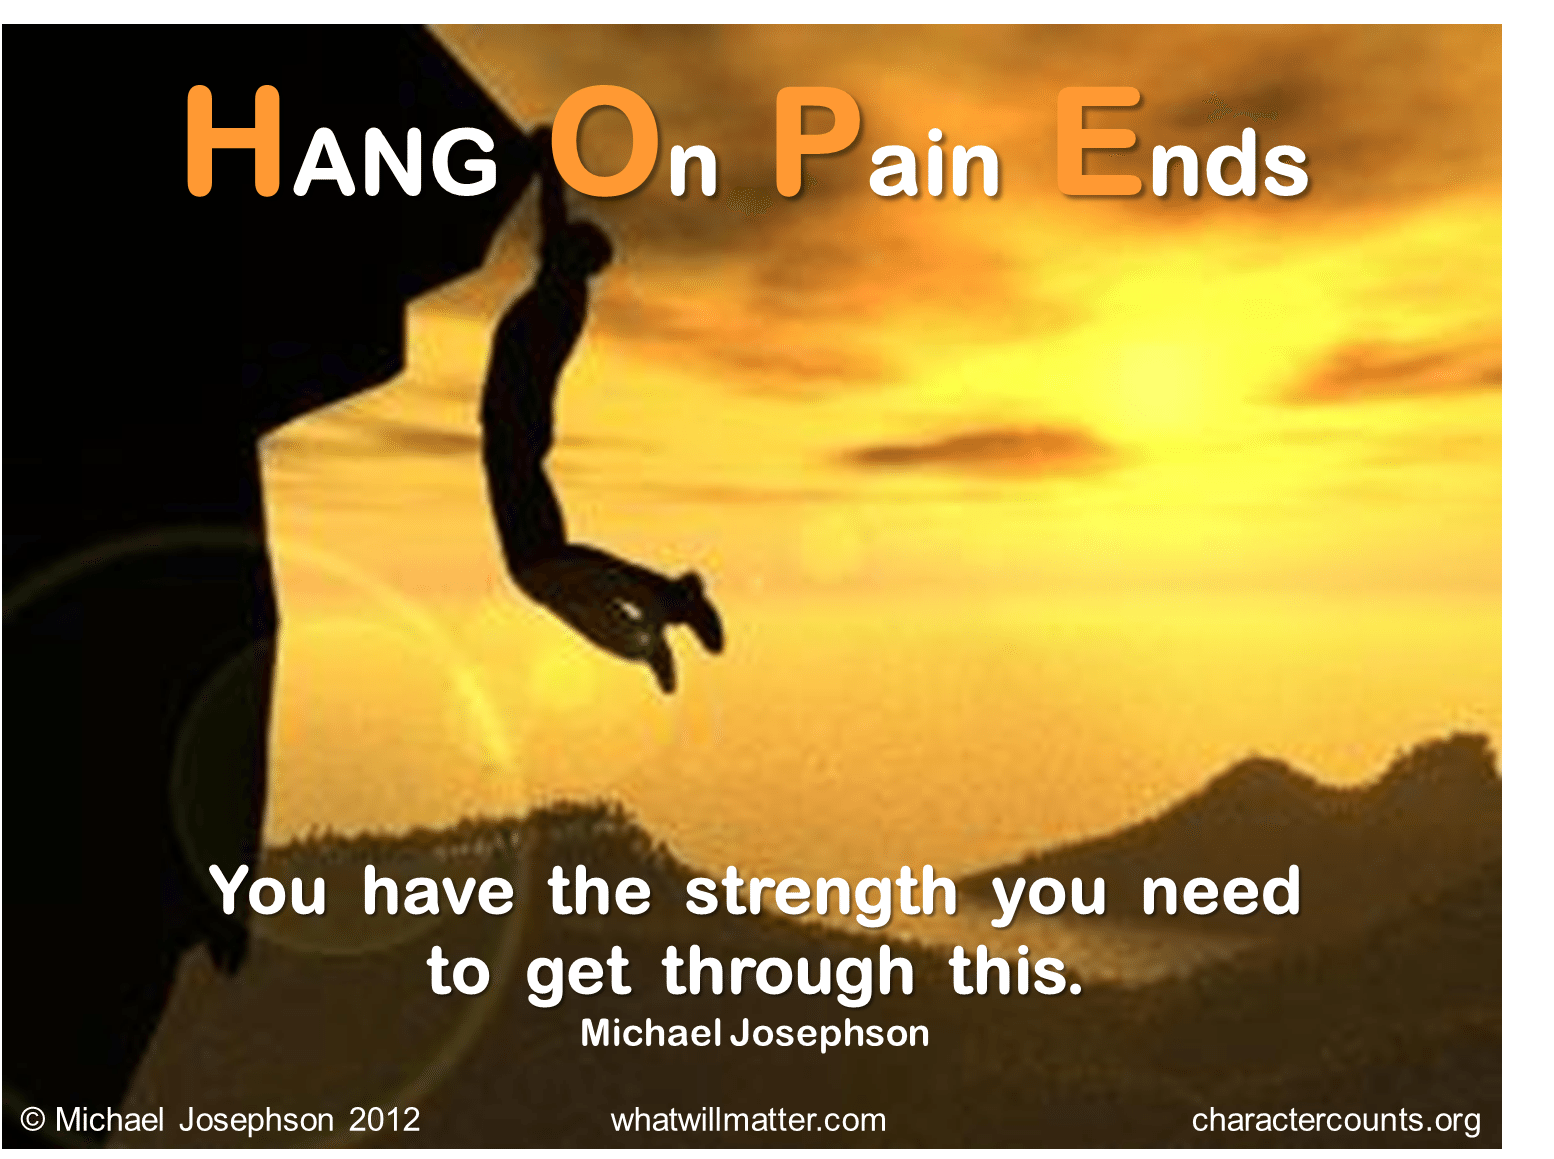 http://whatwillmatter.com/wp-content/uploads/2012/01/AA-Hope-Hang-on-pain-ends-44.png